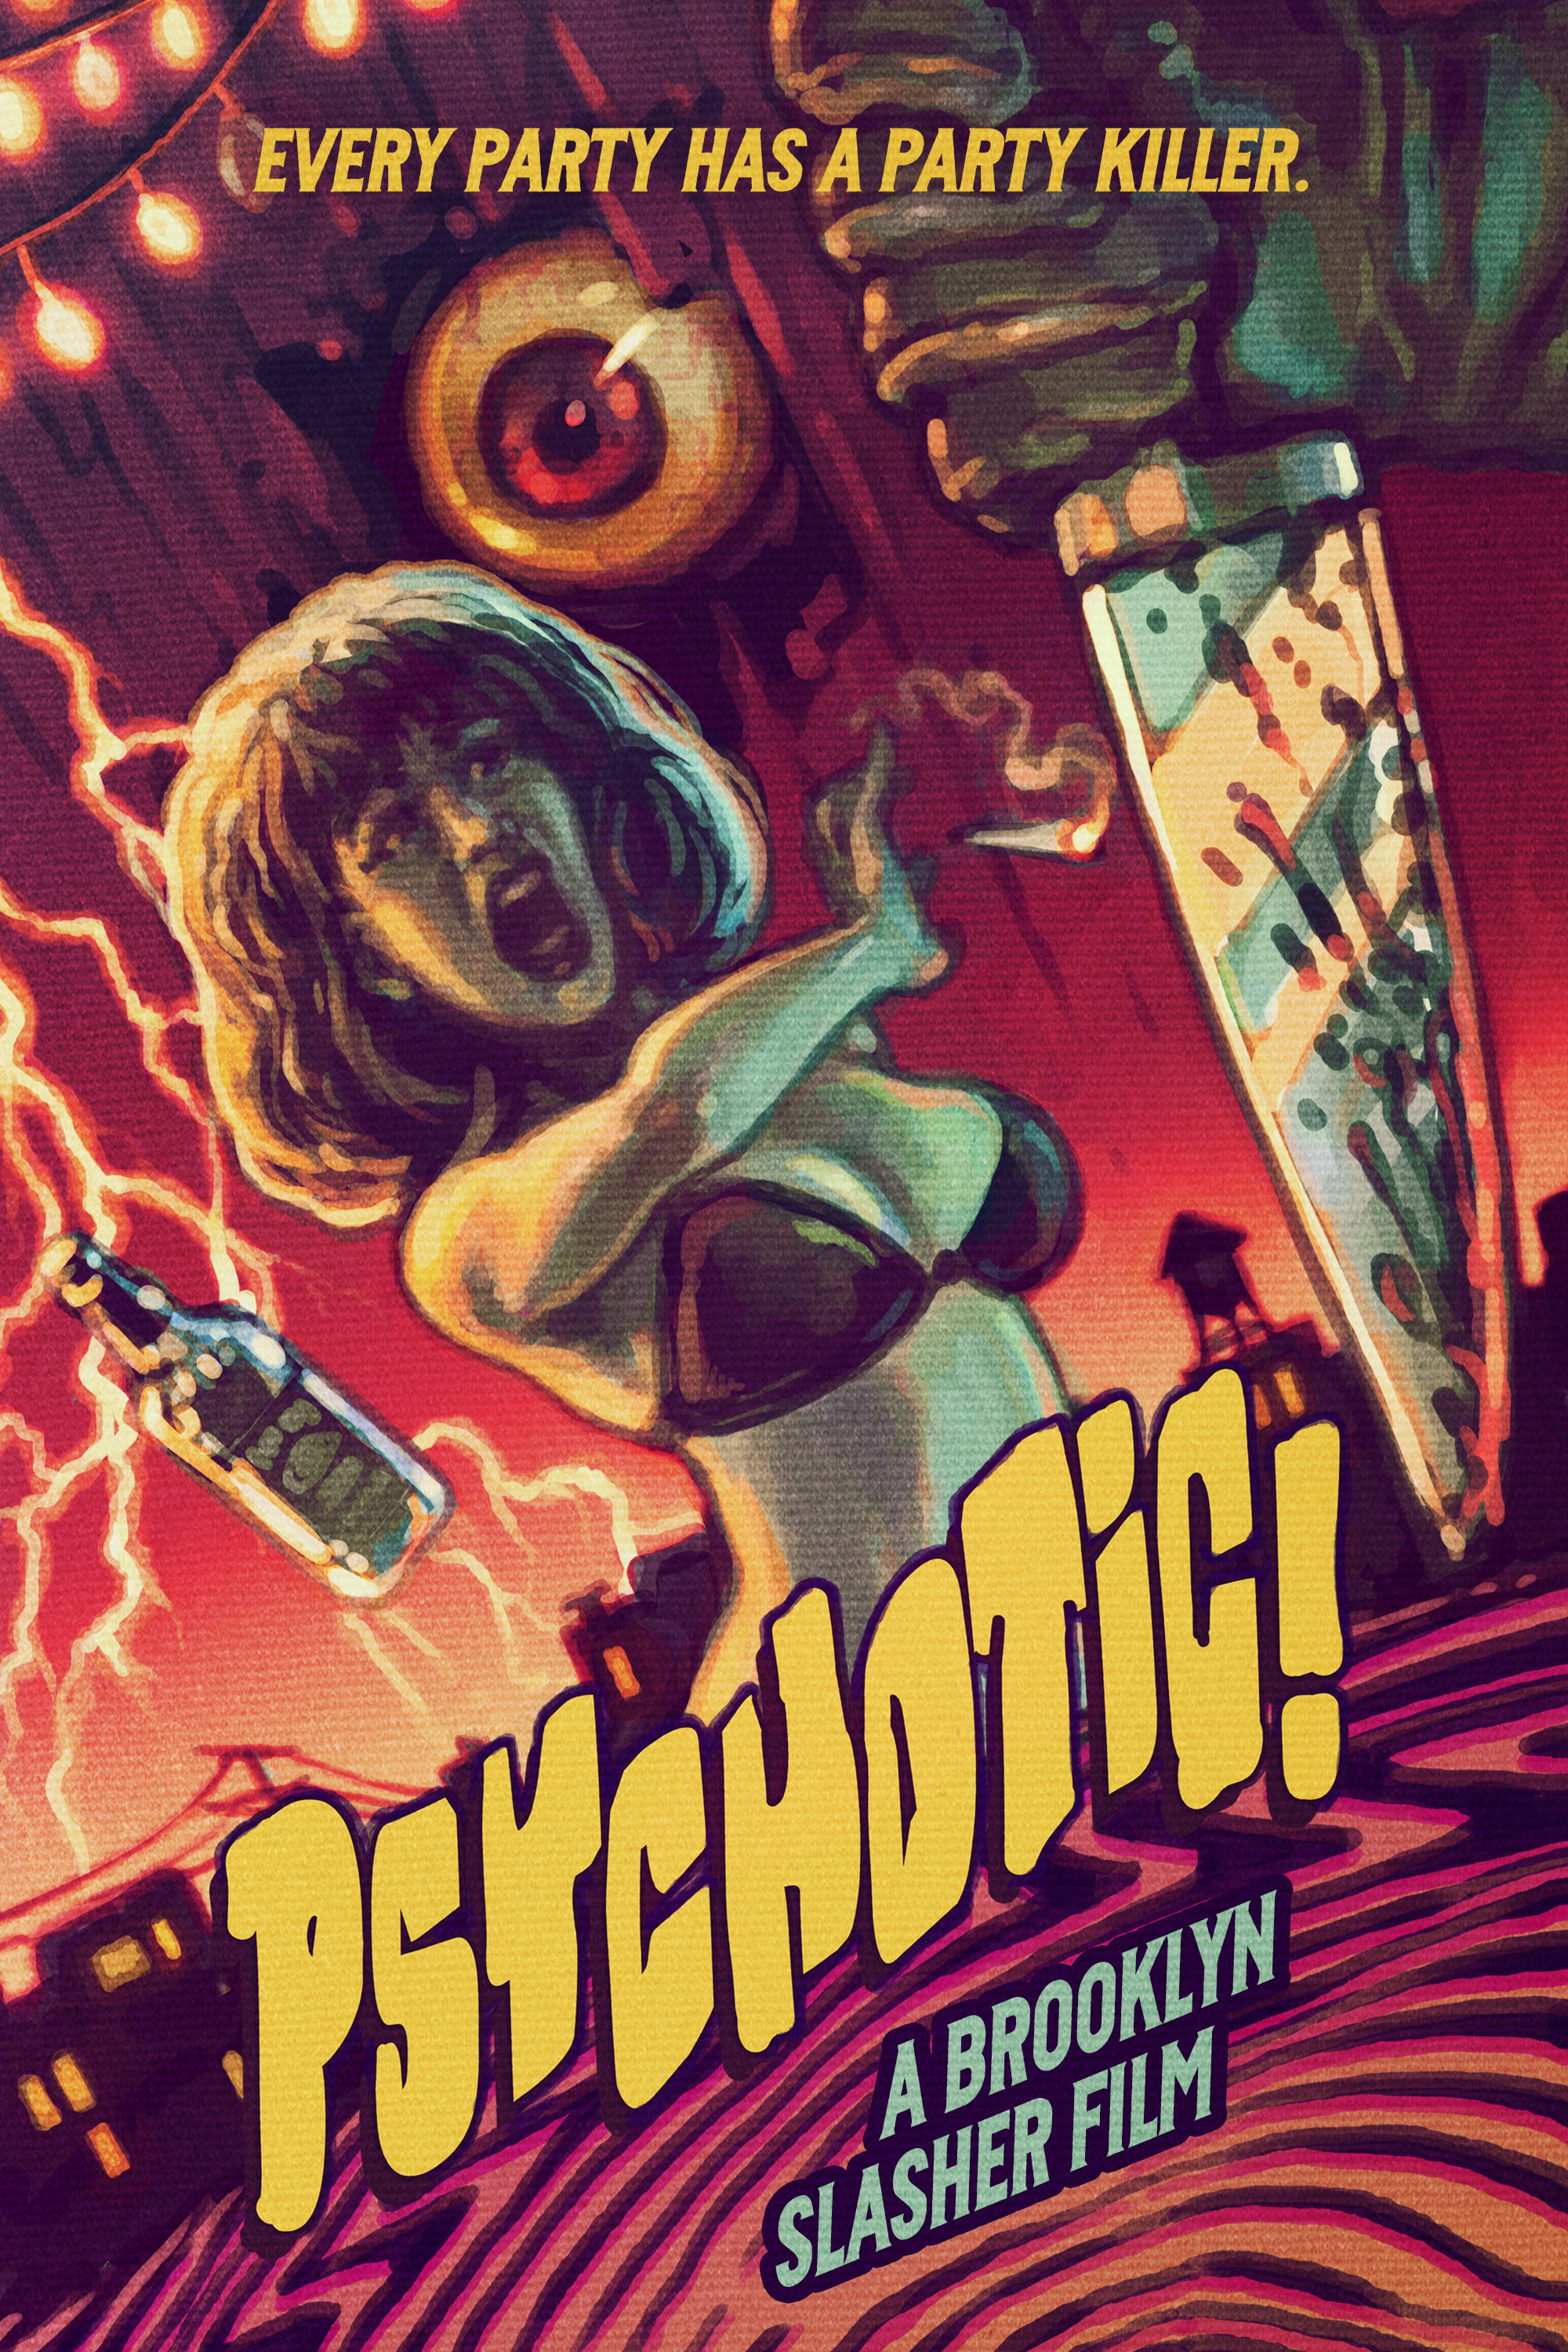 Psychotic film review: unhinged Eighties slasher cuts through a modern subculture